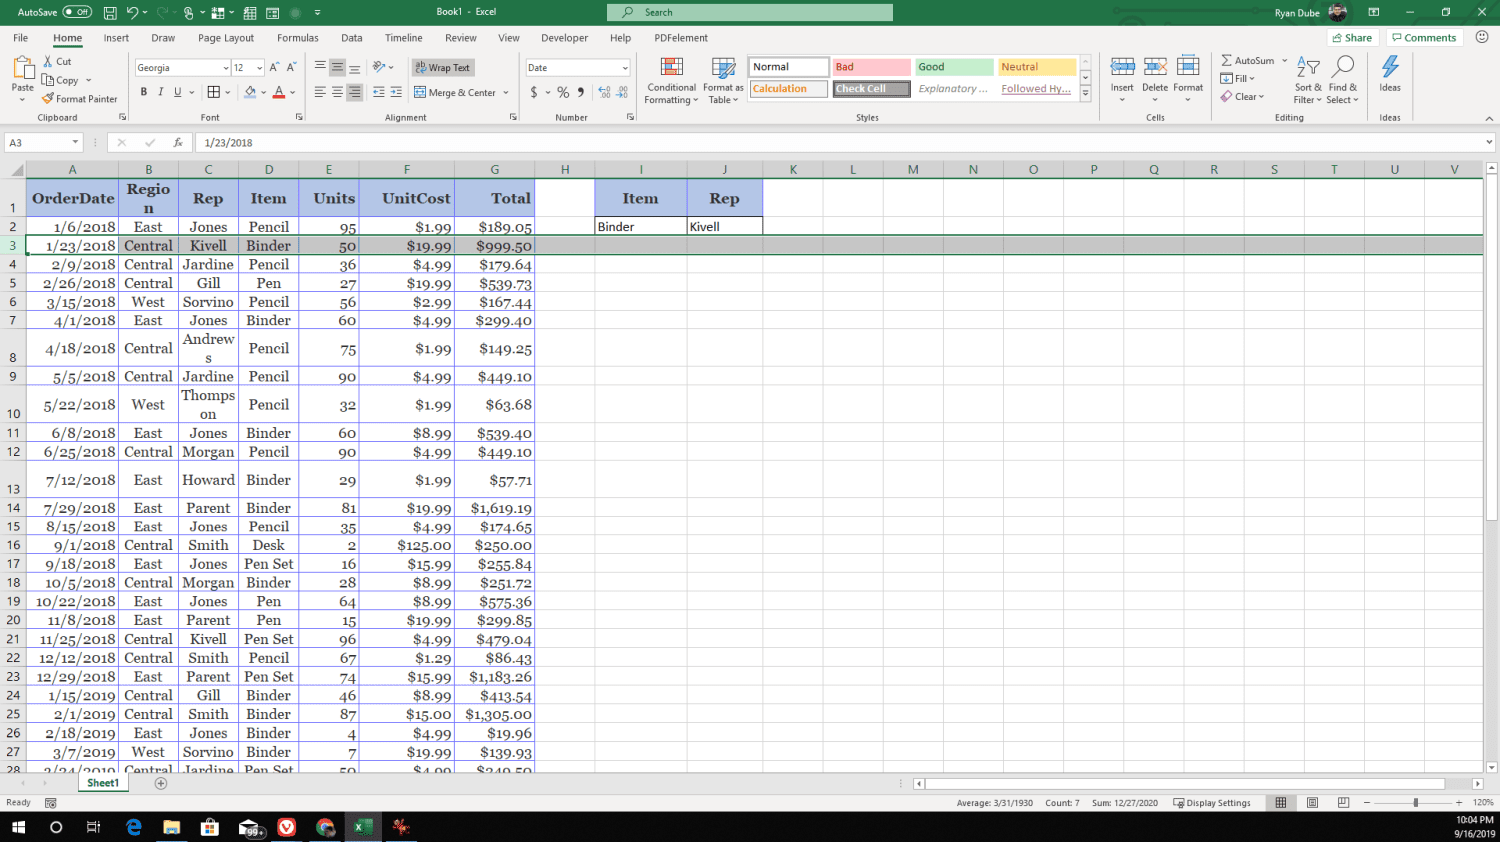 Screenshot of searching for items in columns to the left in XLOOKUP